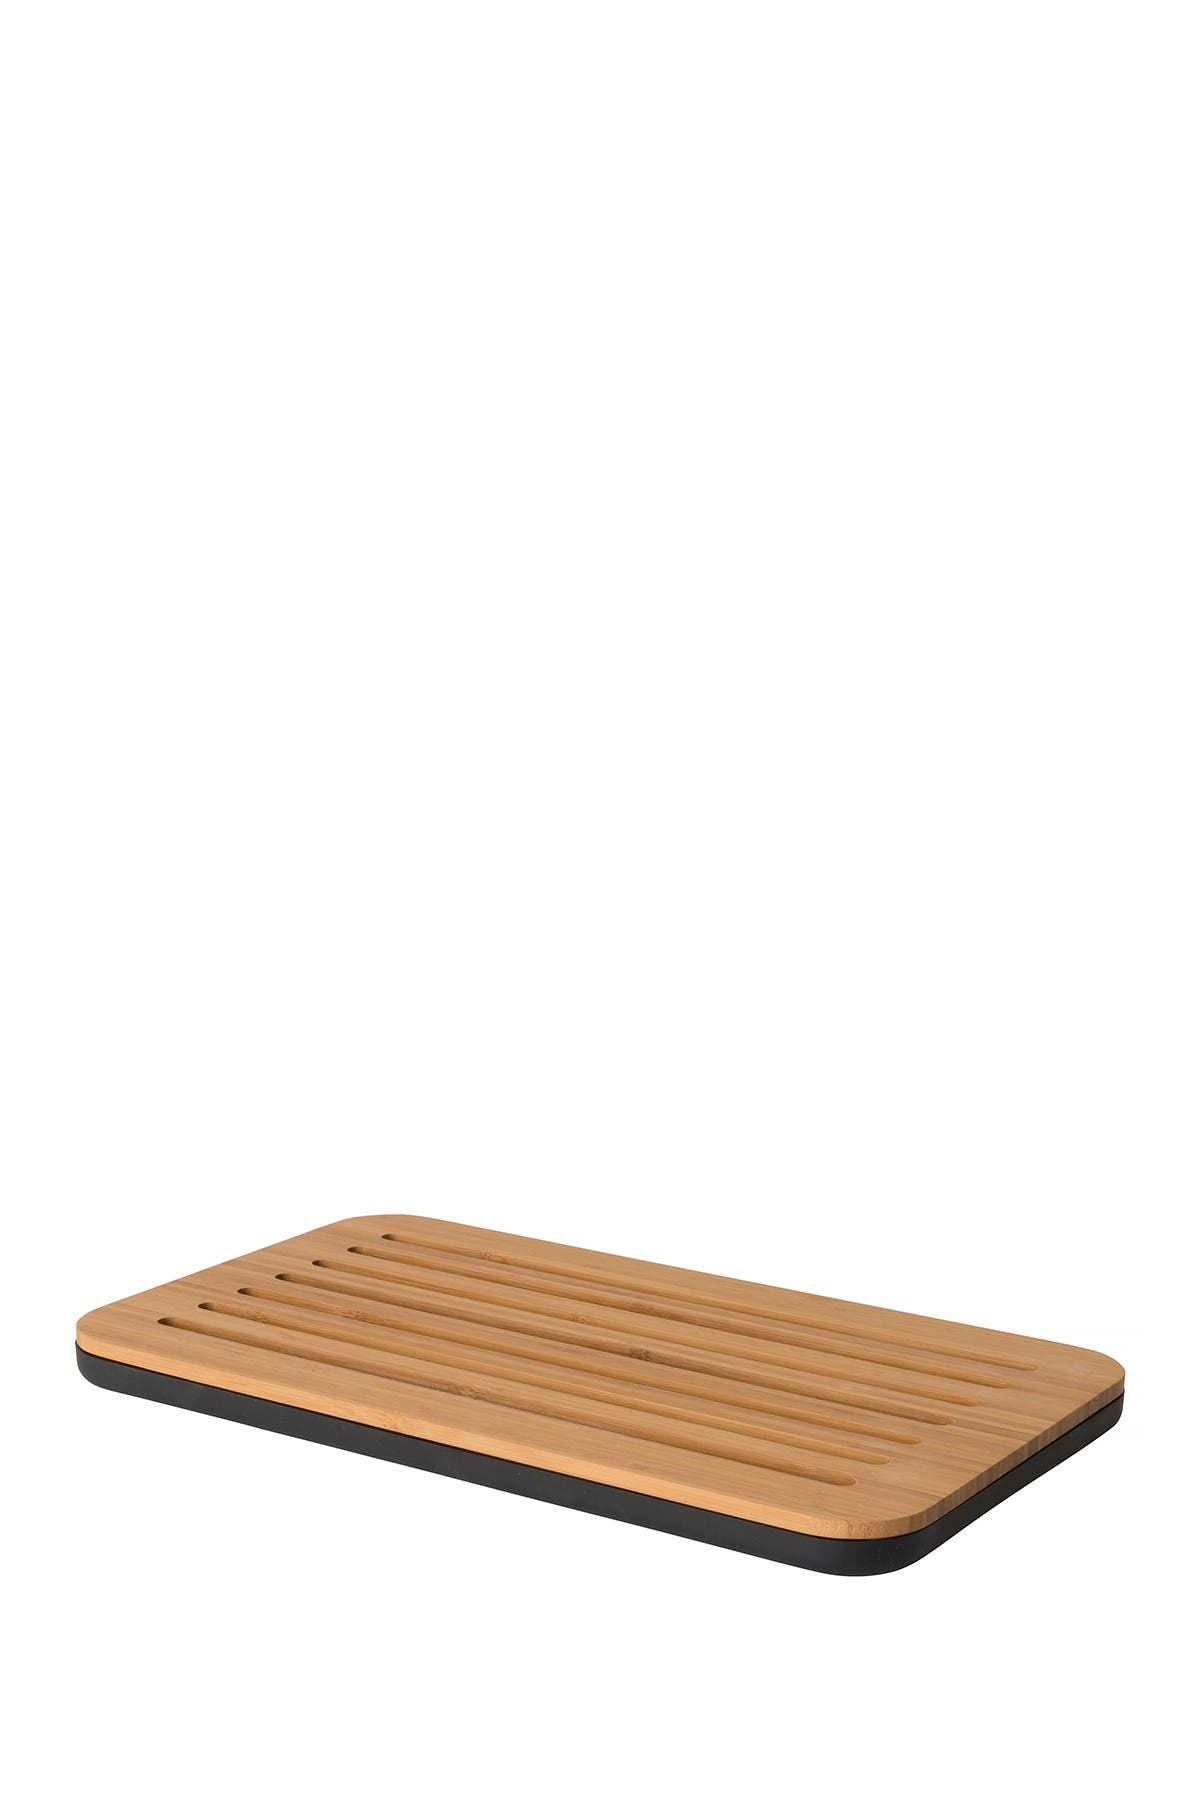 Image of BergHOFF Multifunctional Two Sided Cutting Board